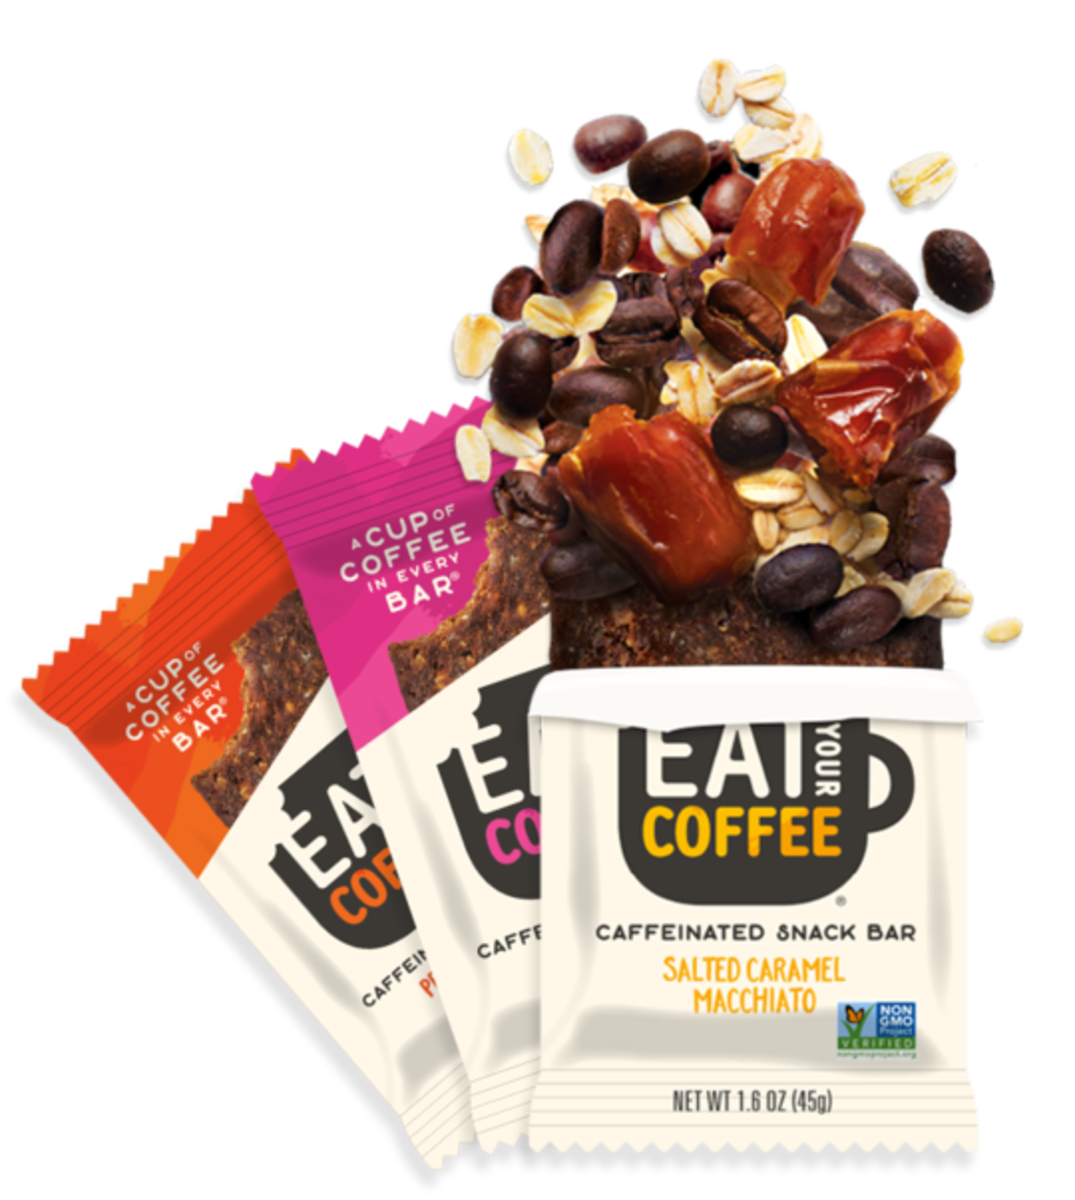 Review of Eat Your Coffee Caffeinated Snack Bars